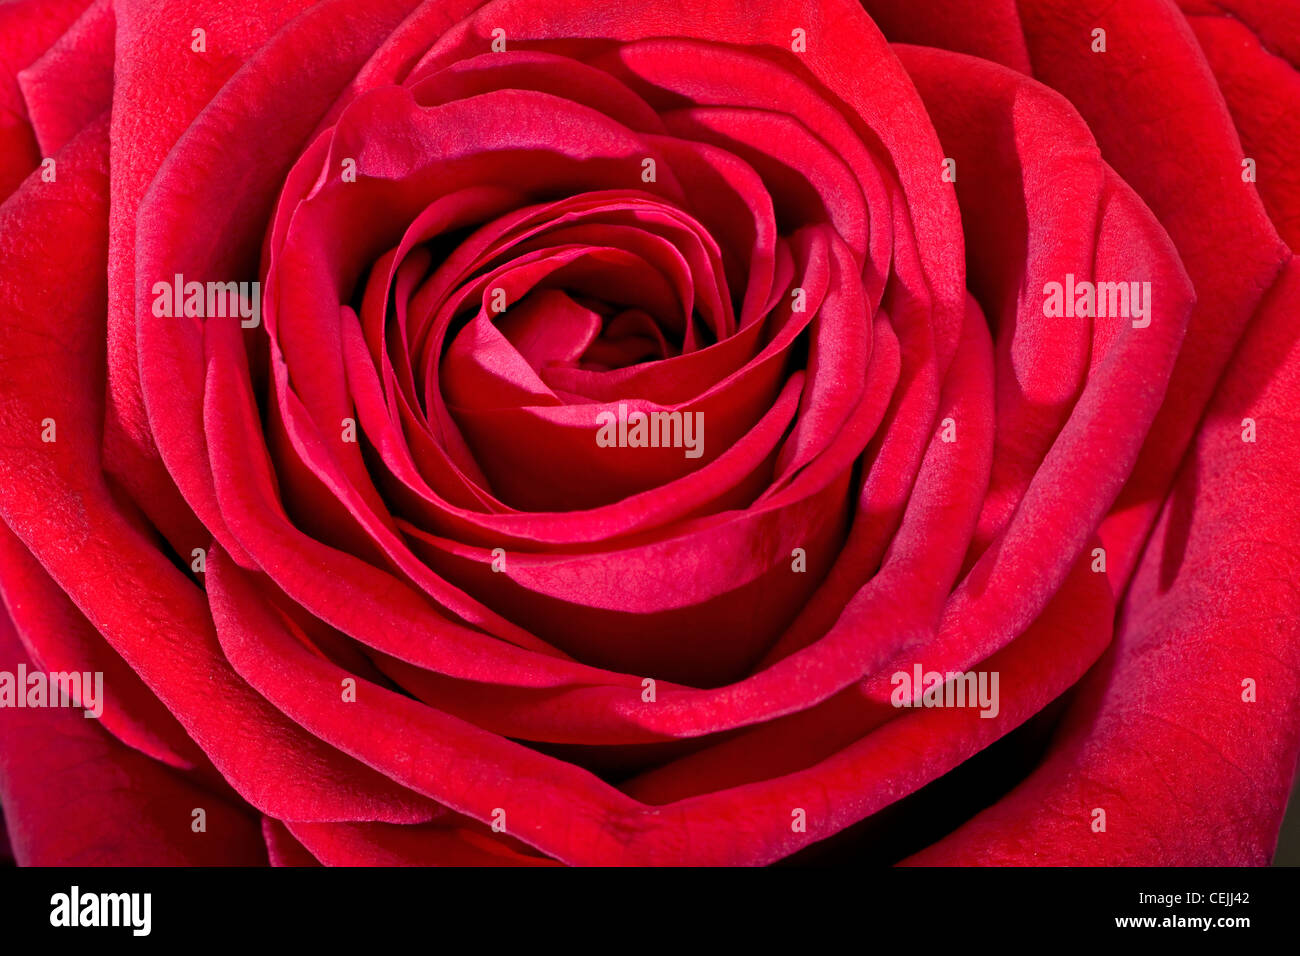 Red rose close-up as romantic flower - Stock Image